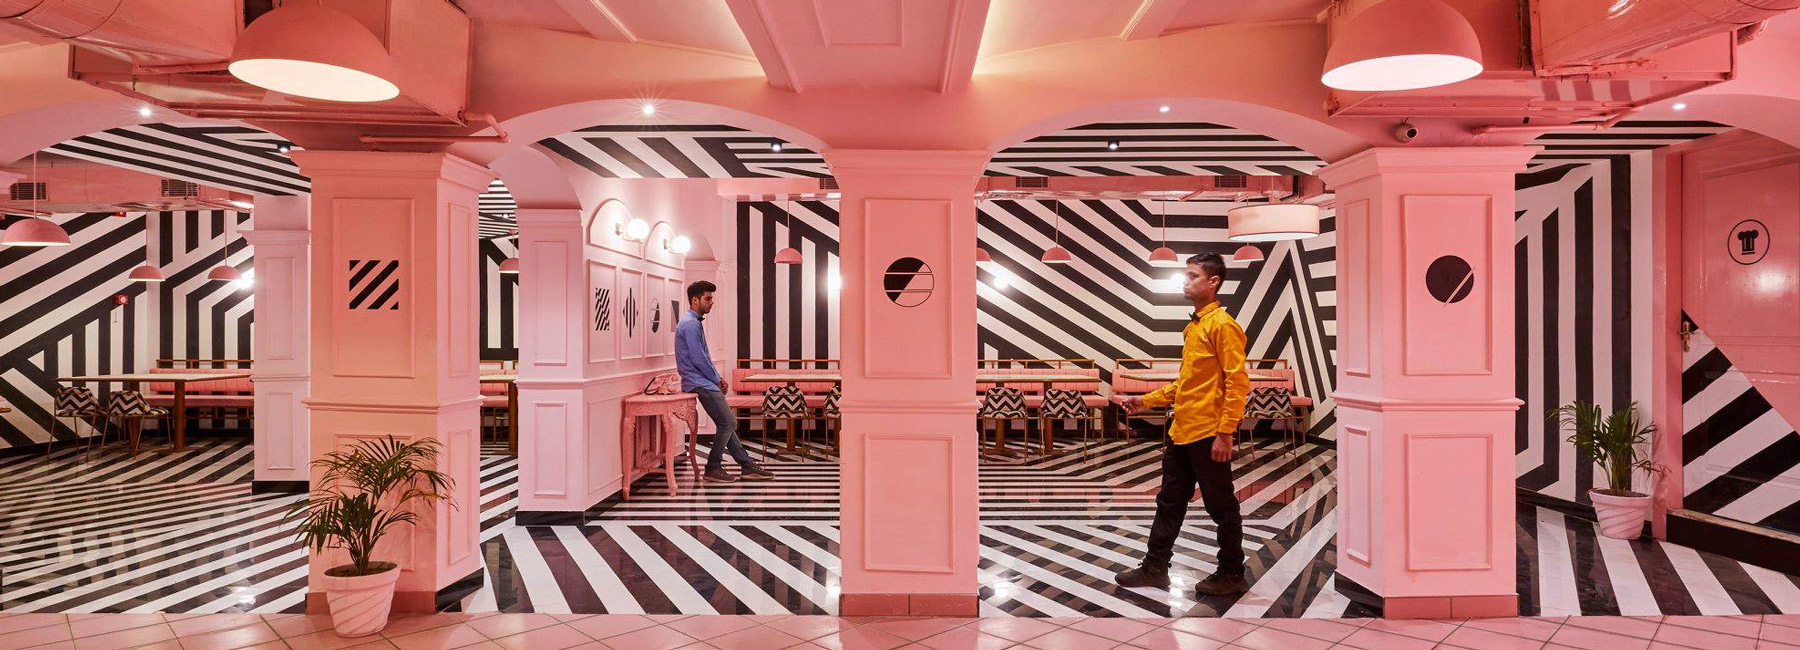 pink-zebra-feast-india-company-kanpur-india-renesa-noko-01.jpg